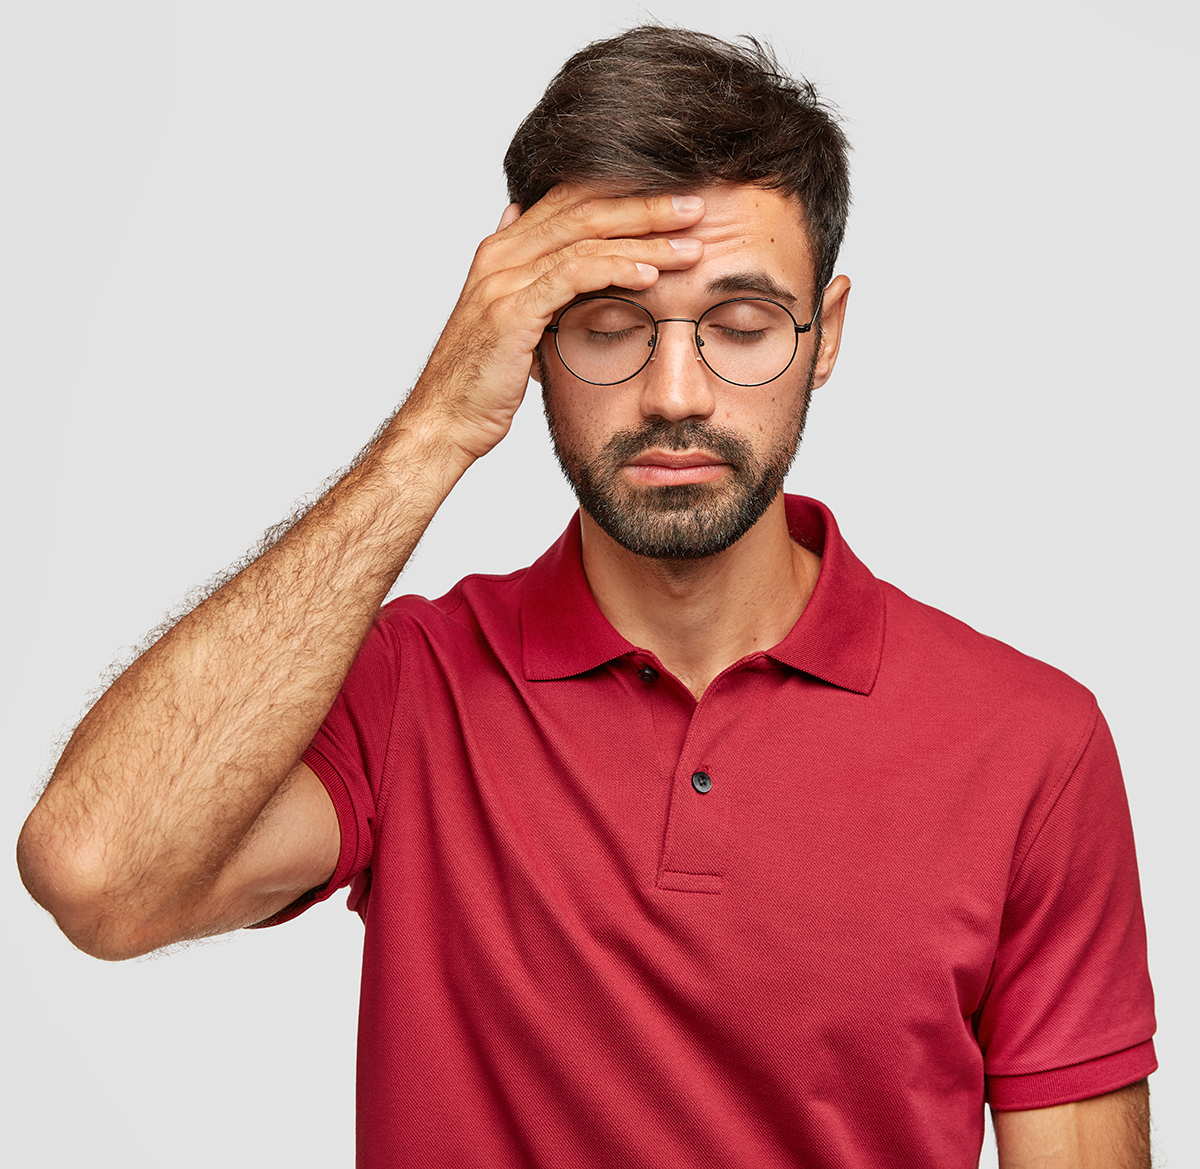 Overworked Cuacasian male feels terrible headache after sleepless night, keeps hand on forehead, shut eyes, dressed in casual red t shirt, stands against white background. People and tiredness